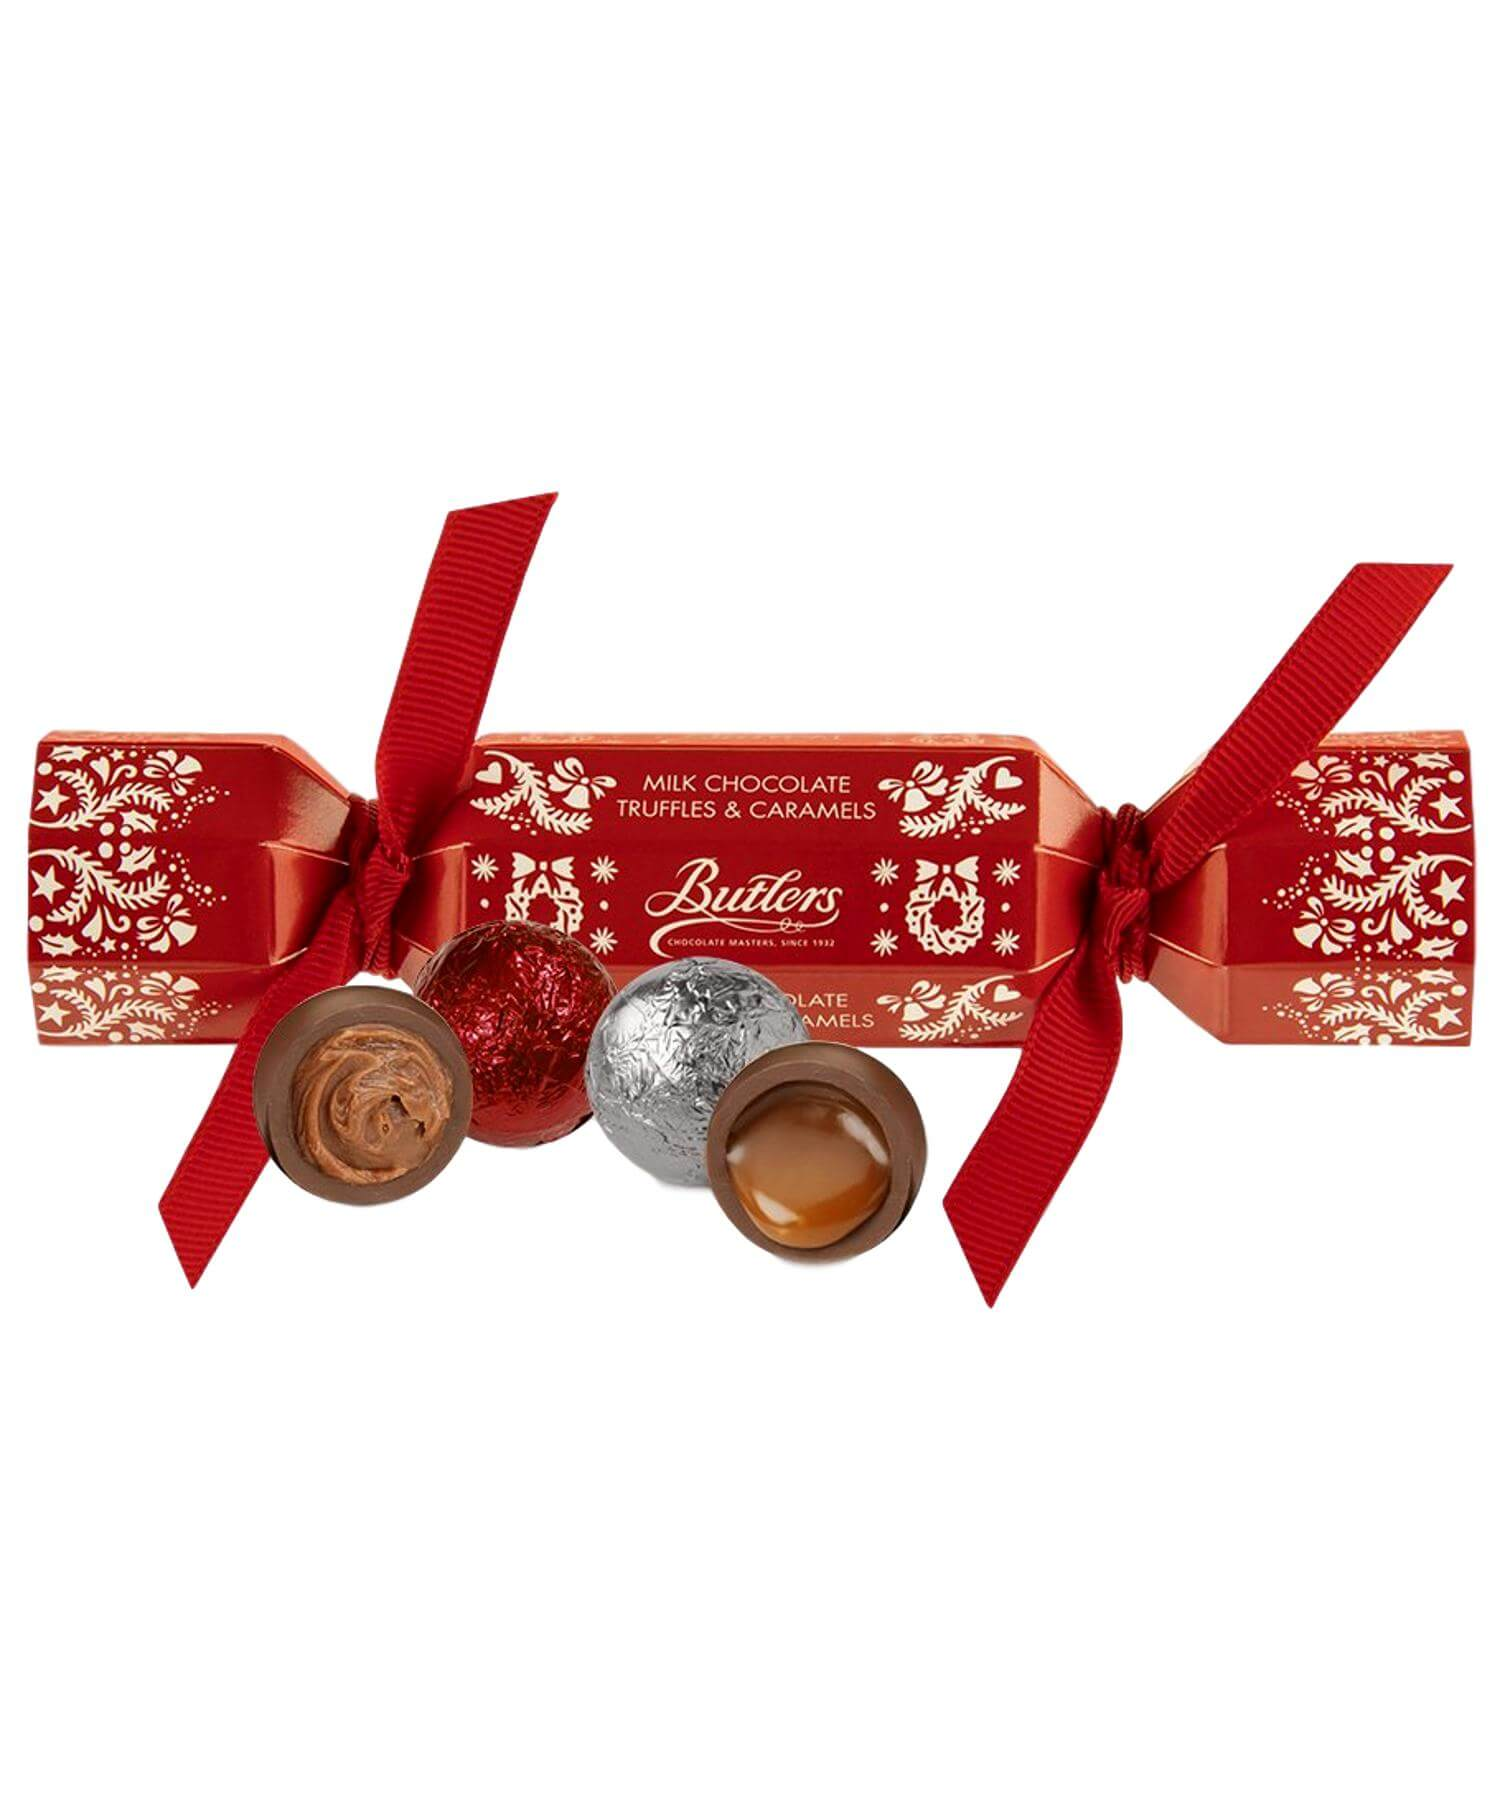 Mini Christmas Cracker - [Butlers Chocolate] - Food Gifts - Irish Gifts